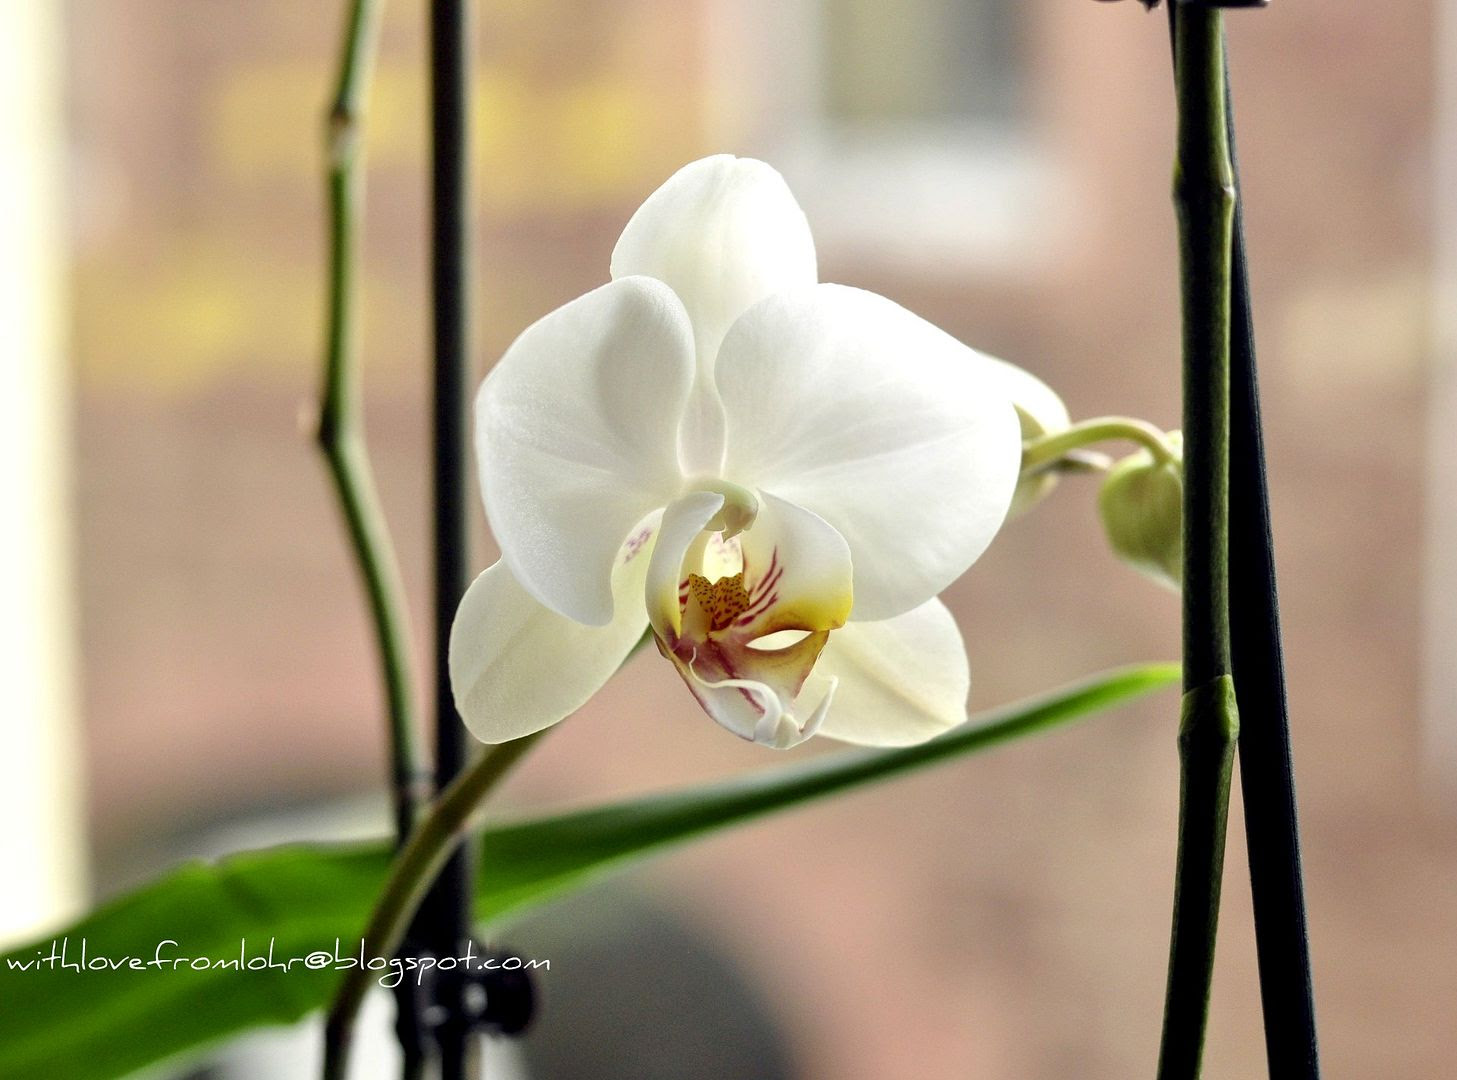 13.02.12, The last of my orchids bloomed...